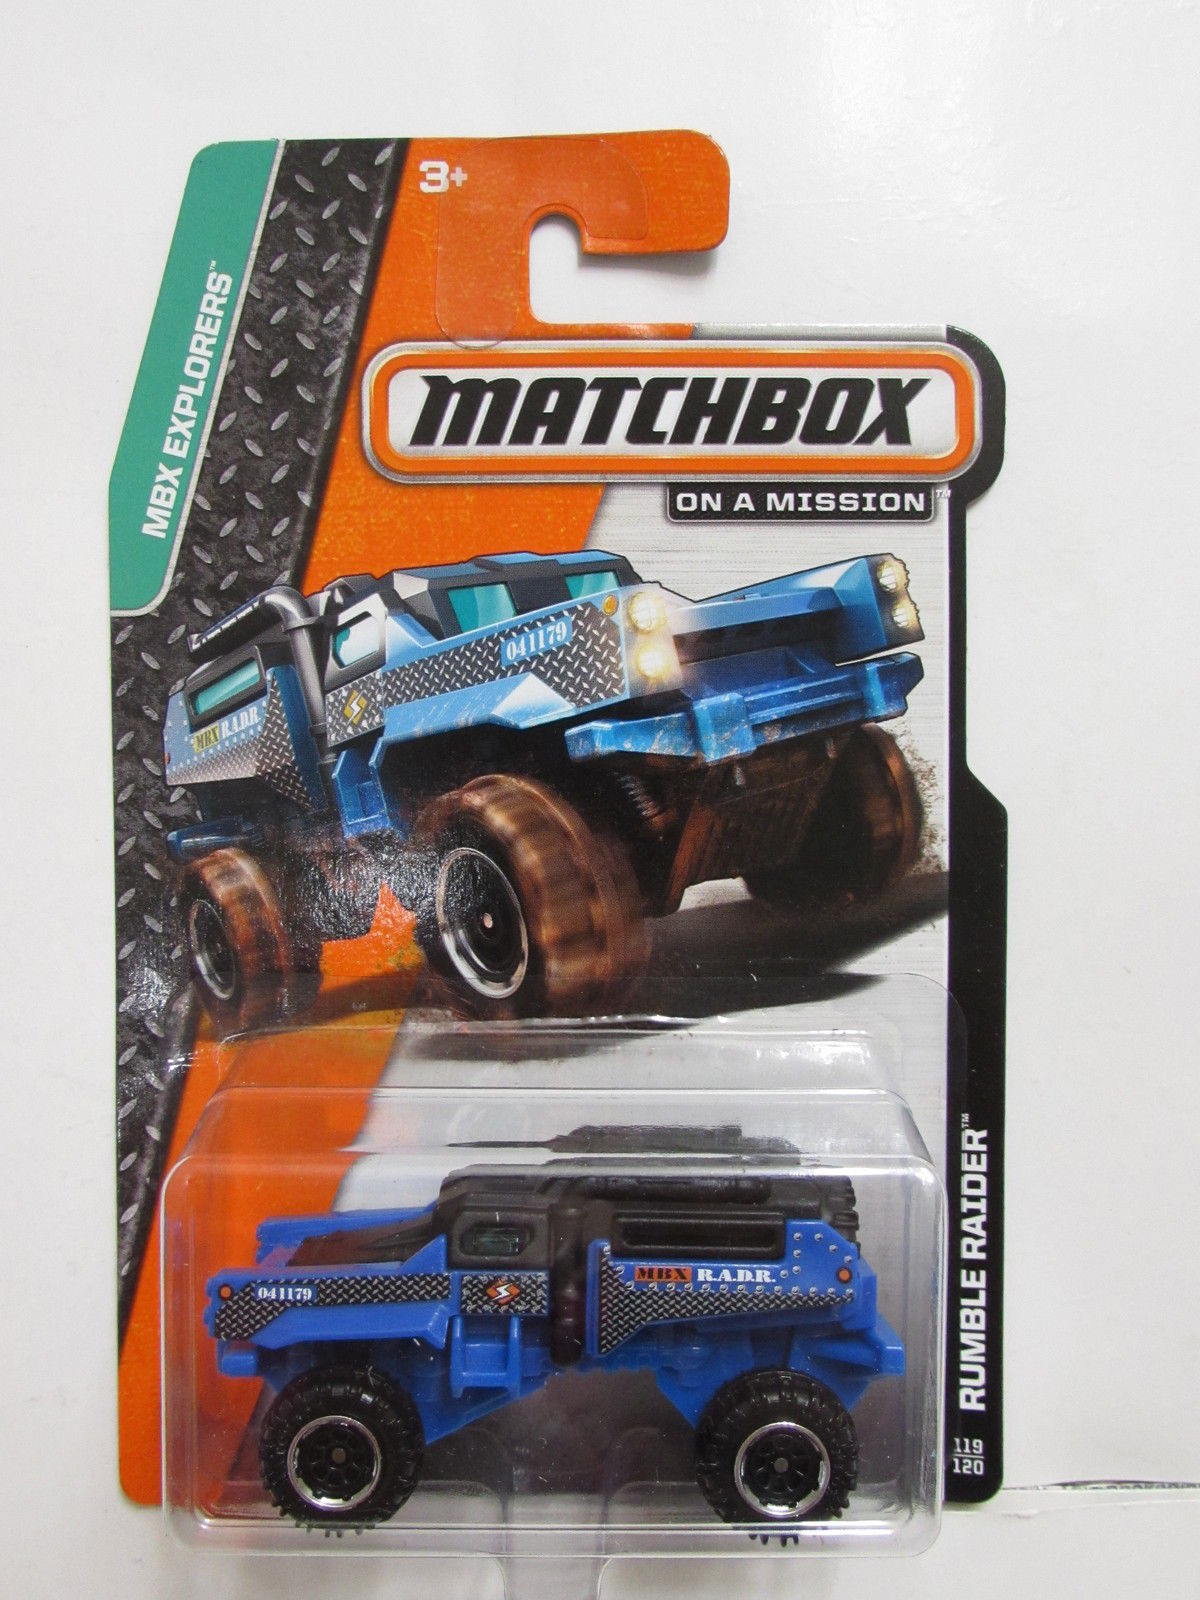 MATCHBOX 2013 ON A MISSION RUMBLE RAIDER